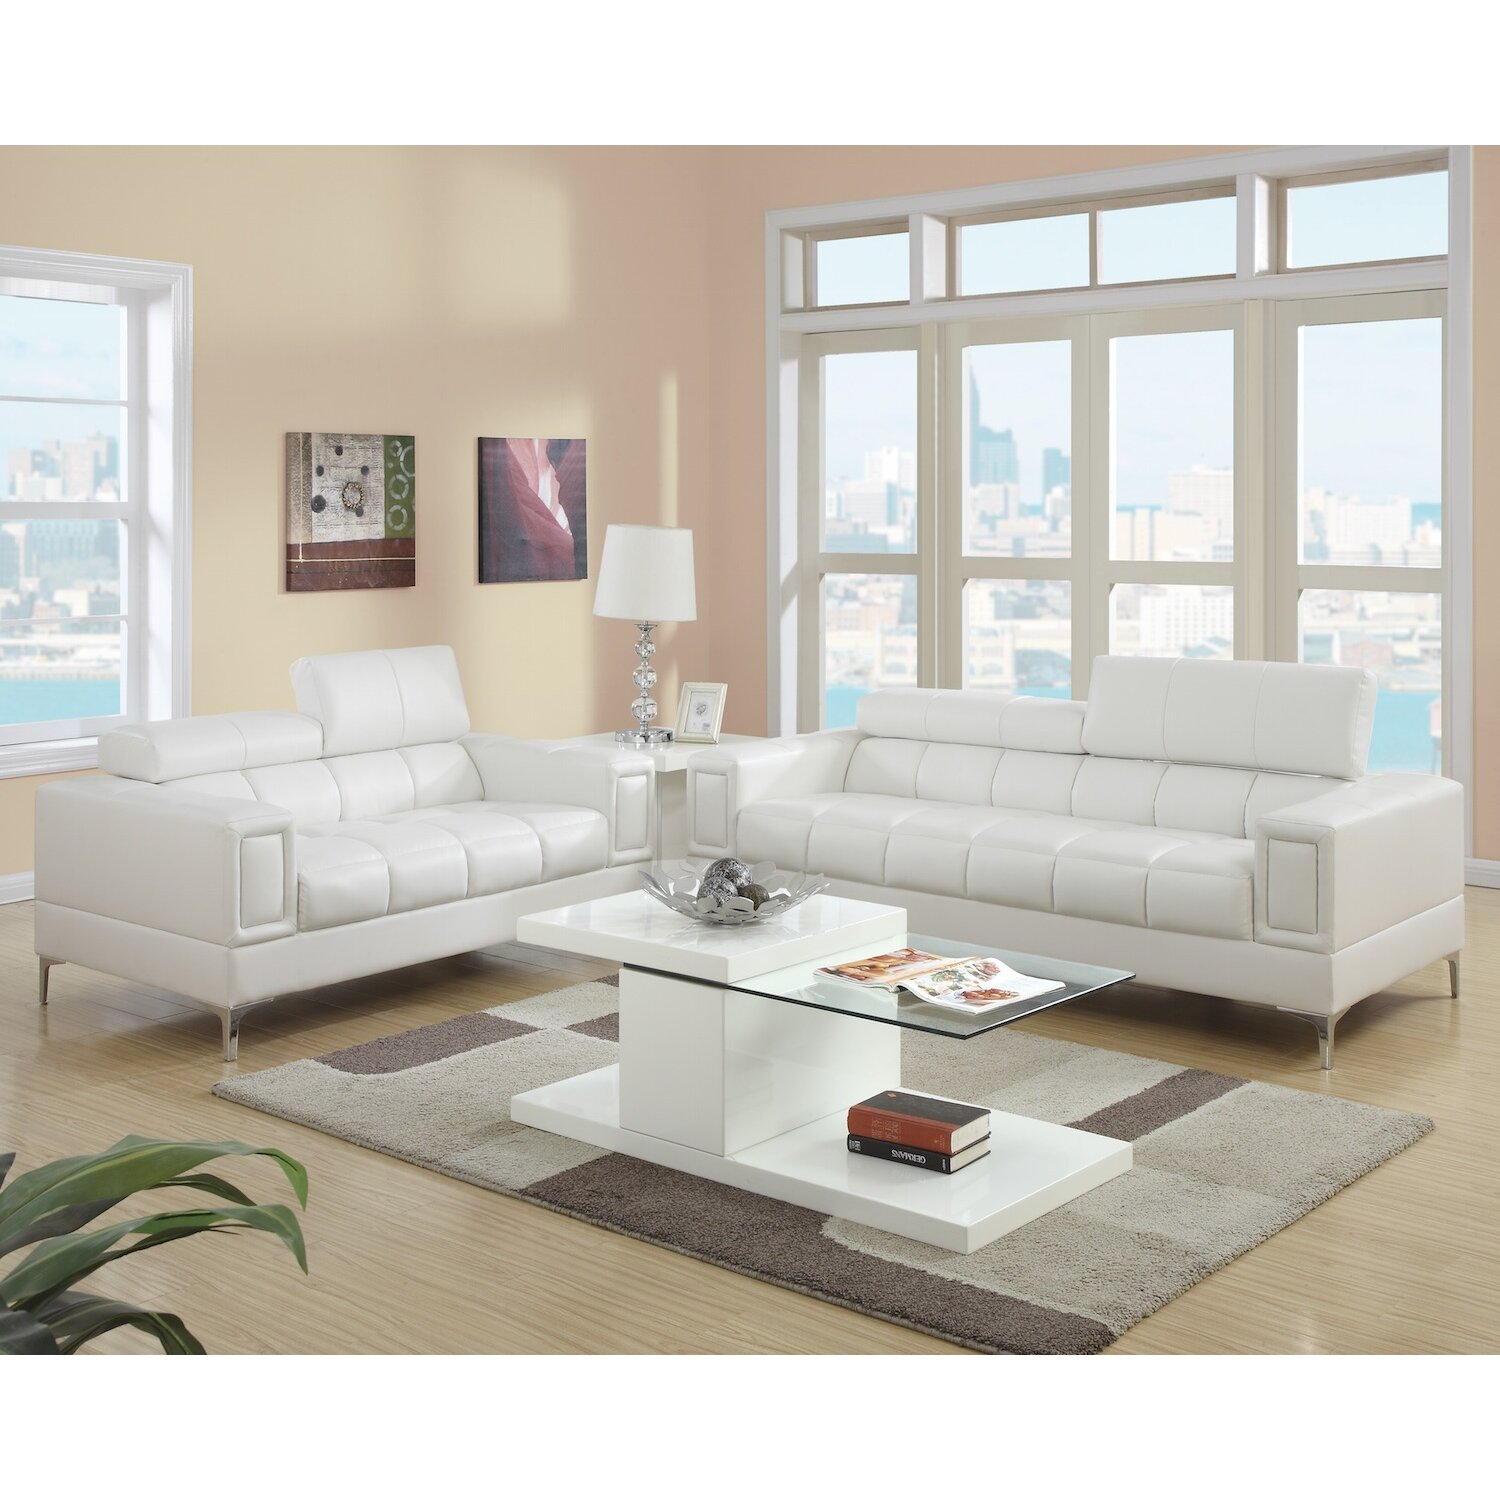 Modern Living Room Set Modern Living Room Sets Allmodern